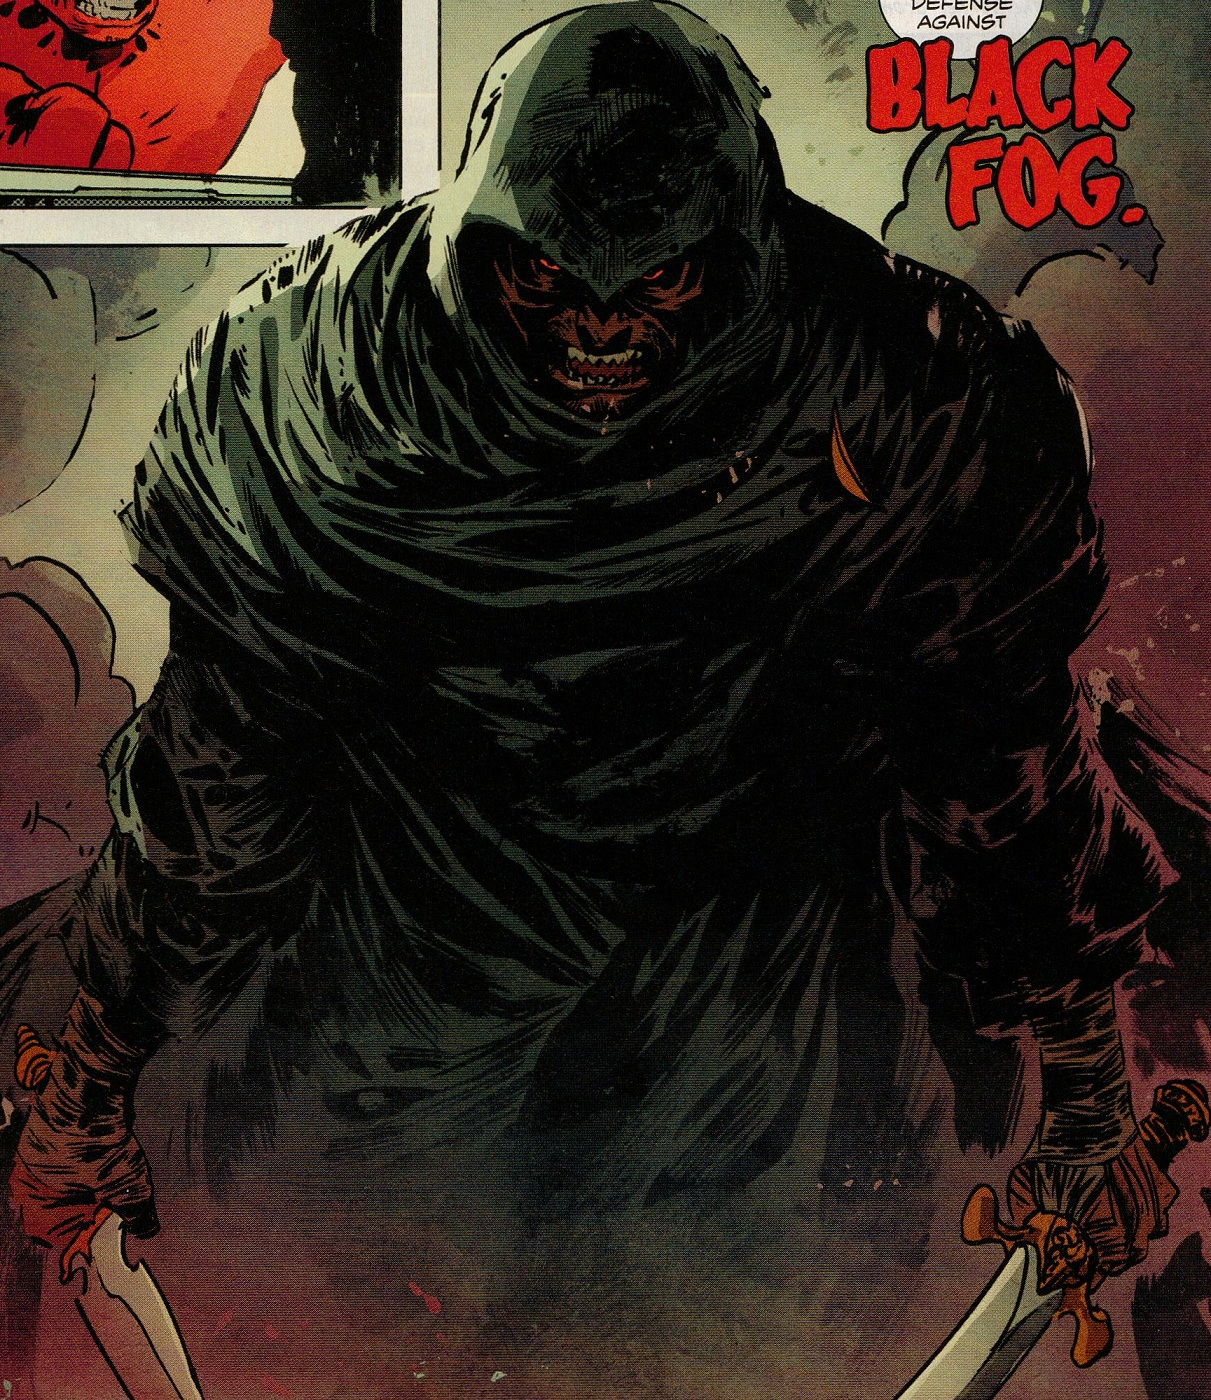 Black Fog (Earth-616)